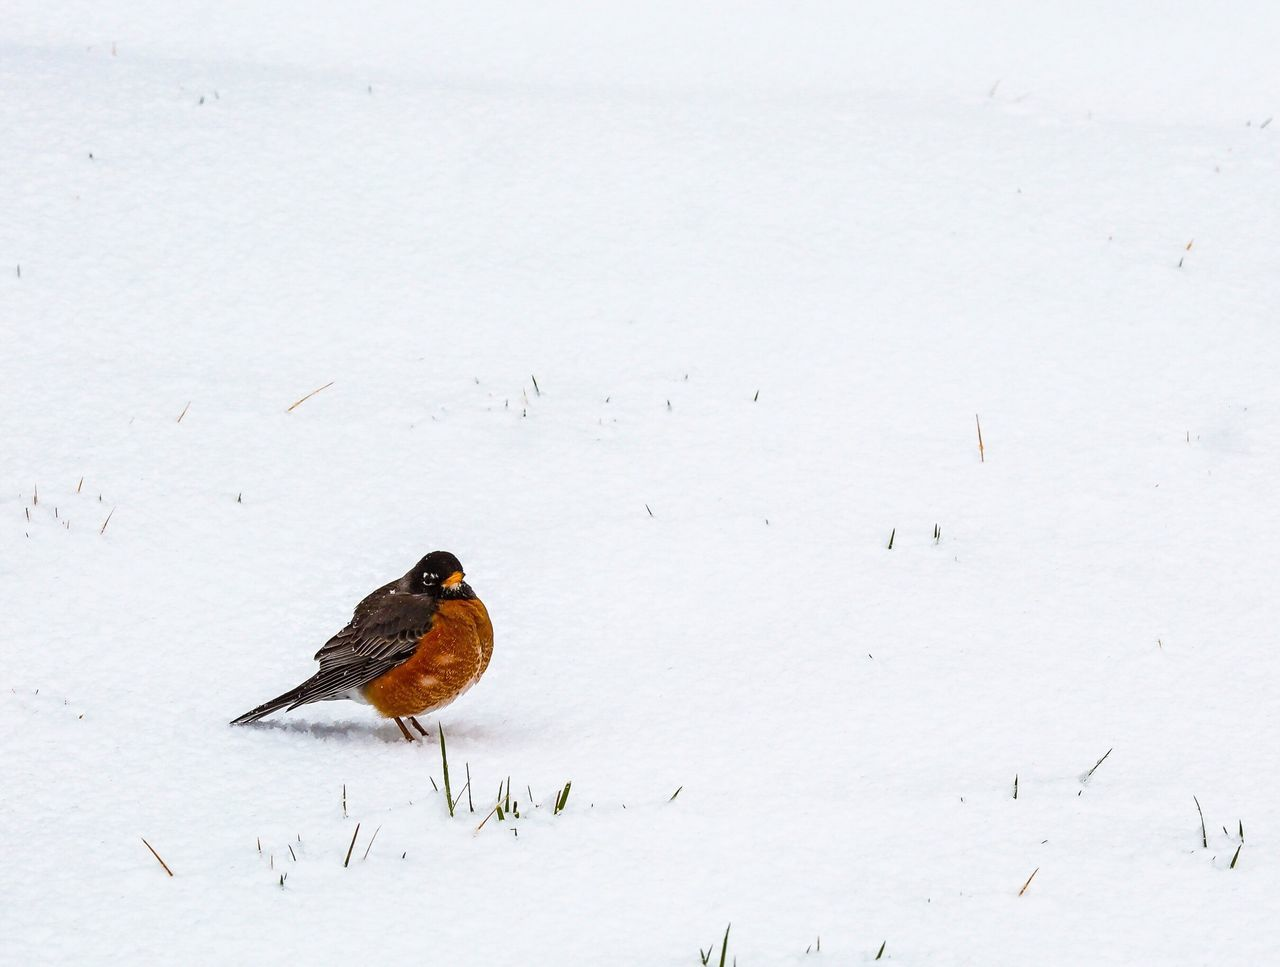 Snow Cold Temperature Winter Bird Animal Themes Animals In The Wild Weather Animal Wildlife Nature Perching Beauty In Nature One Animal No People Outdoors Day Songbird  Beauty In Nature Tranquility Tranquil Scene Scenics JGLowe